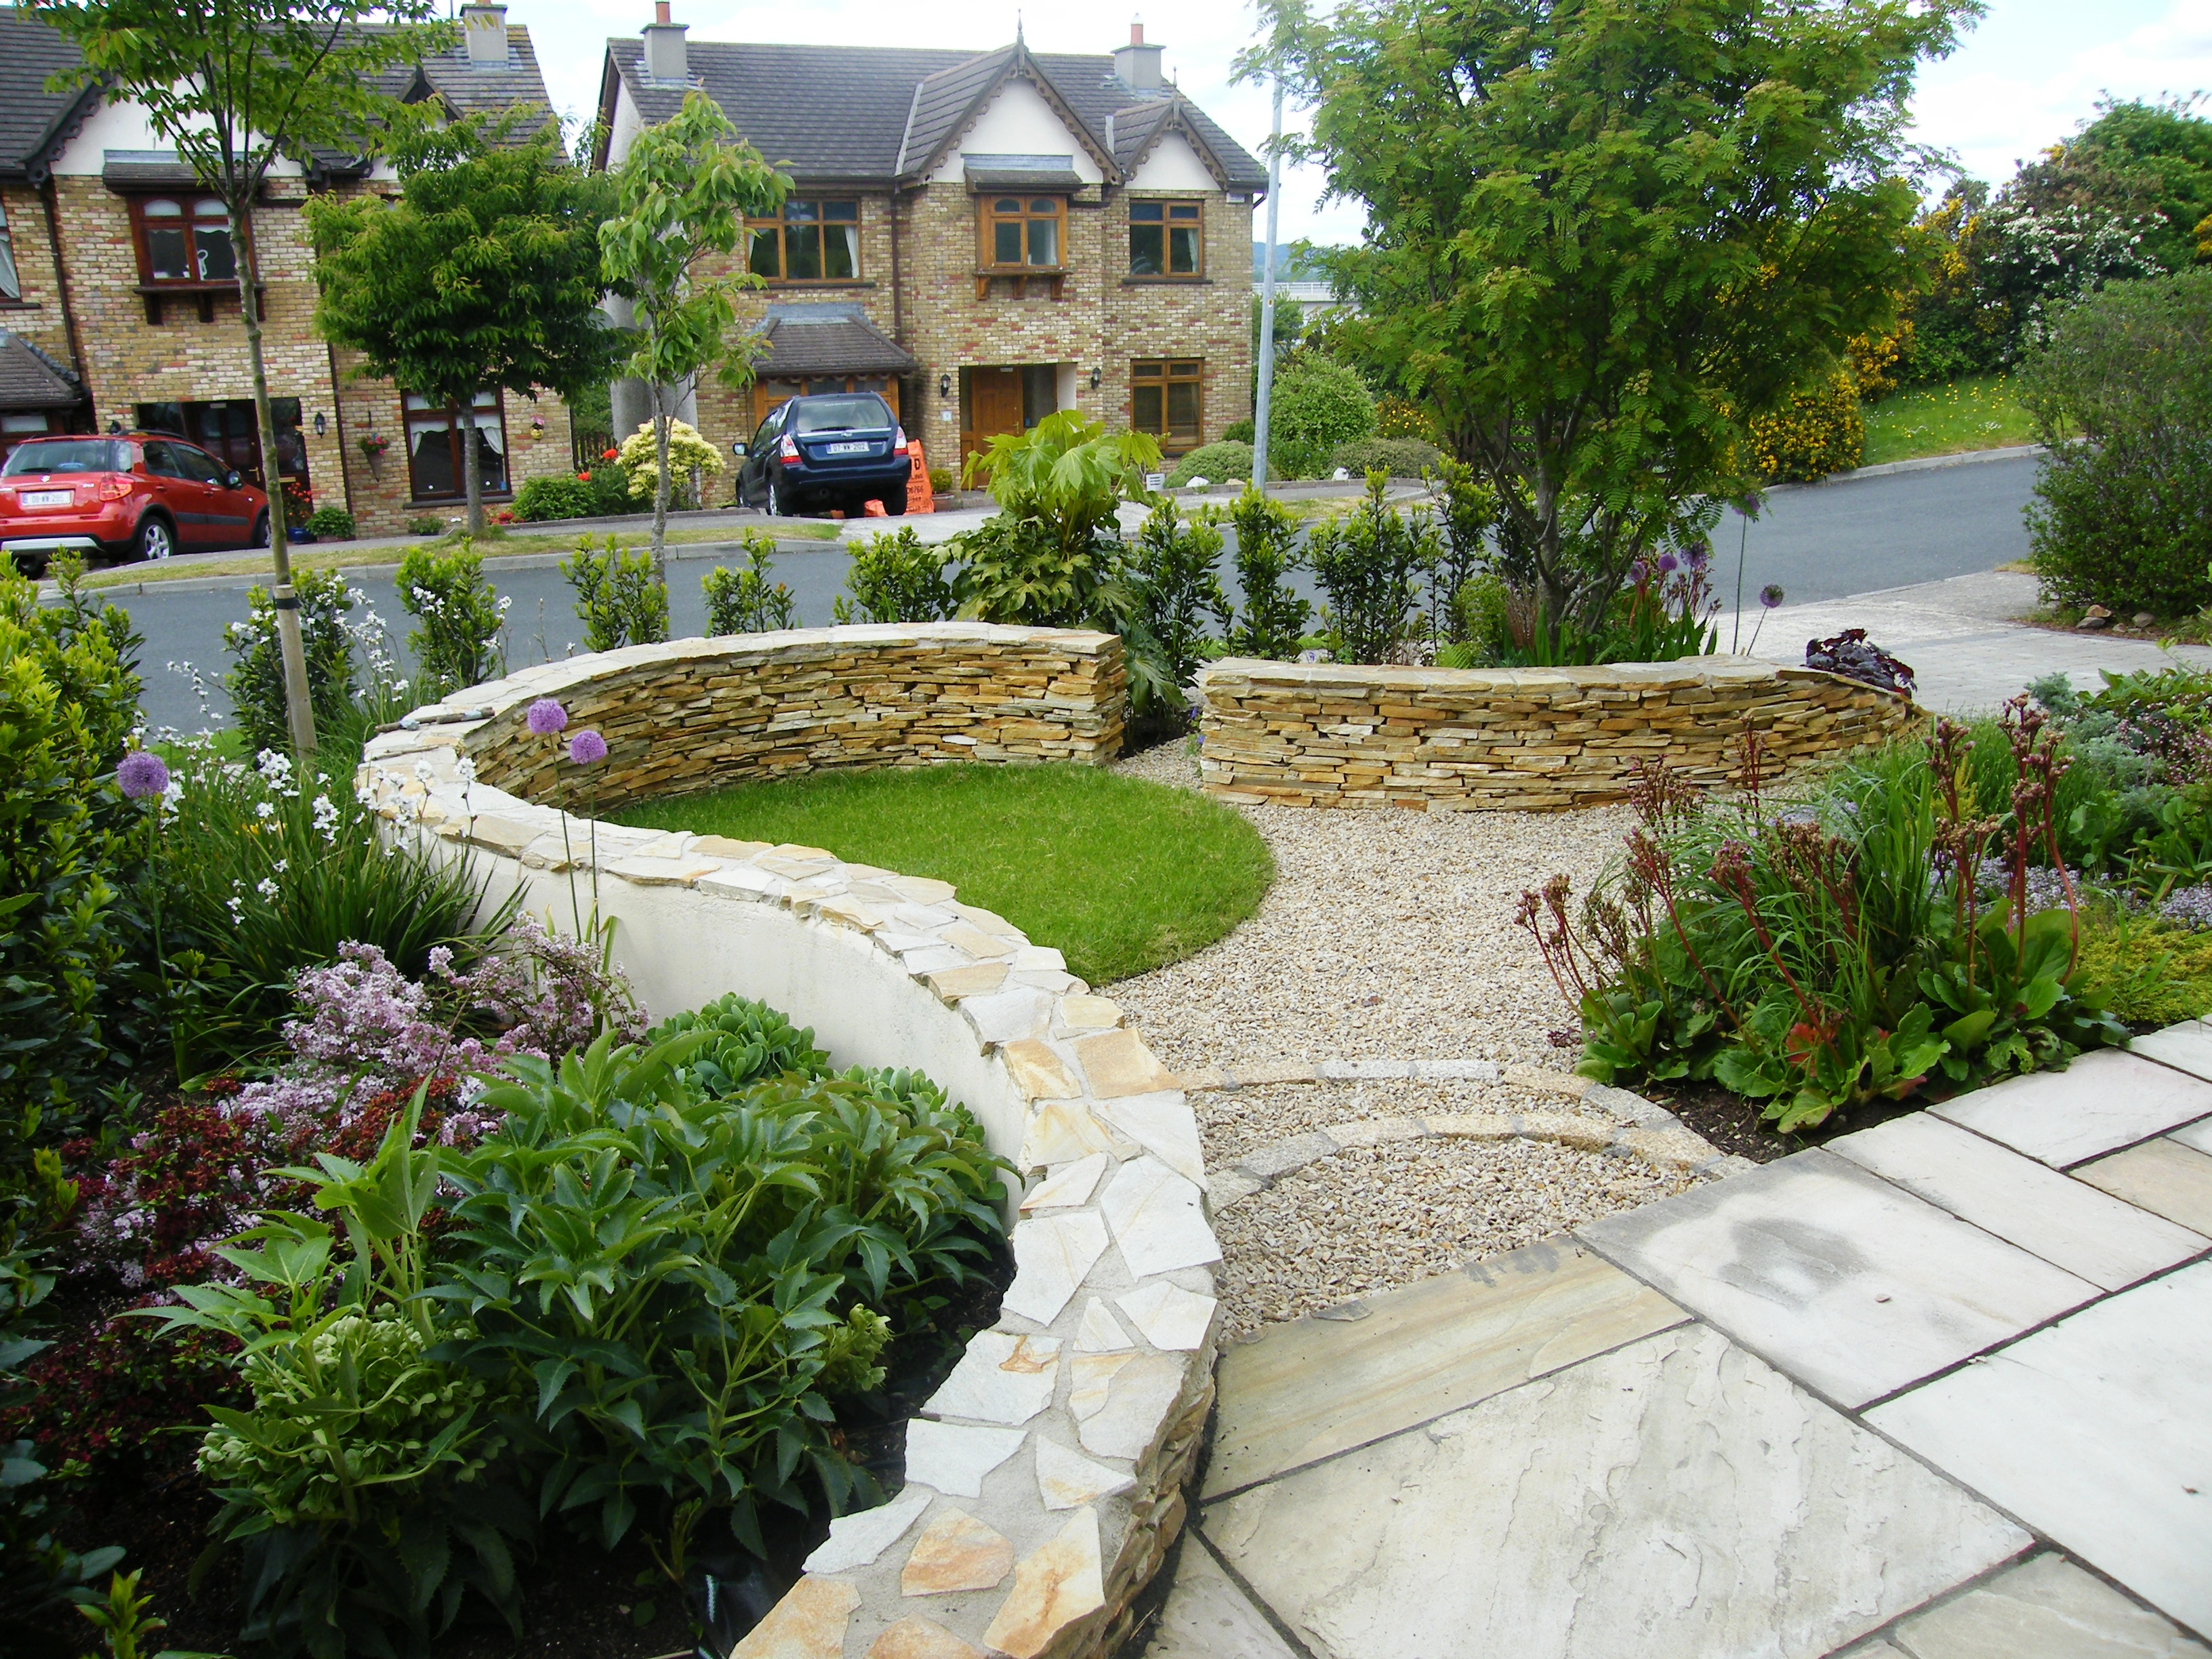 Town gardens tim austen garden designs for Backyard landscape design ideas